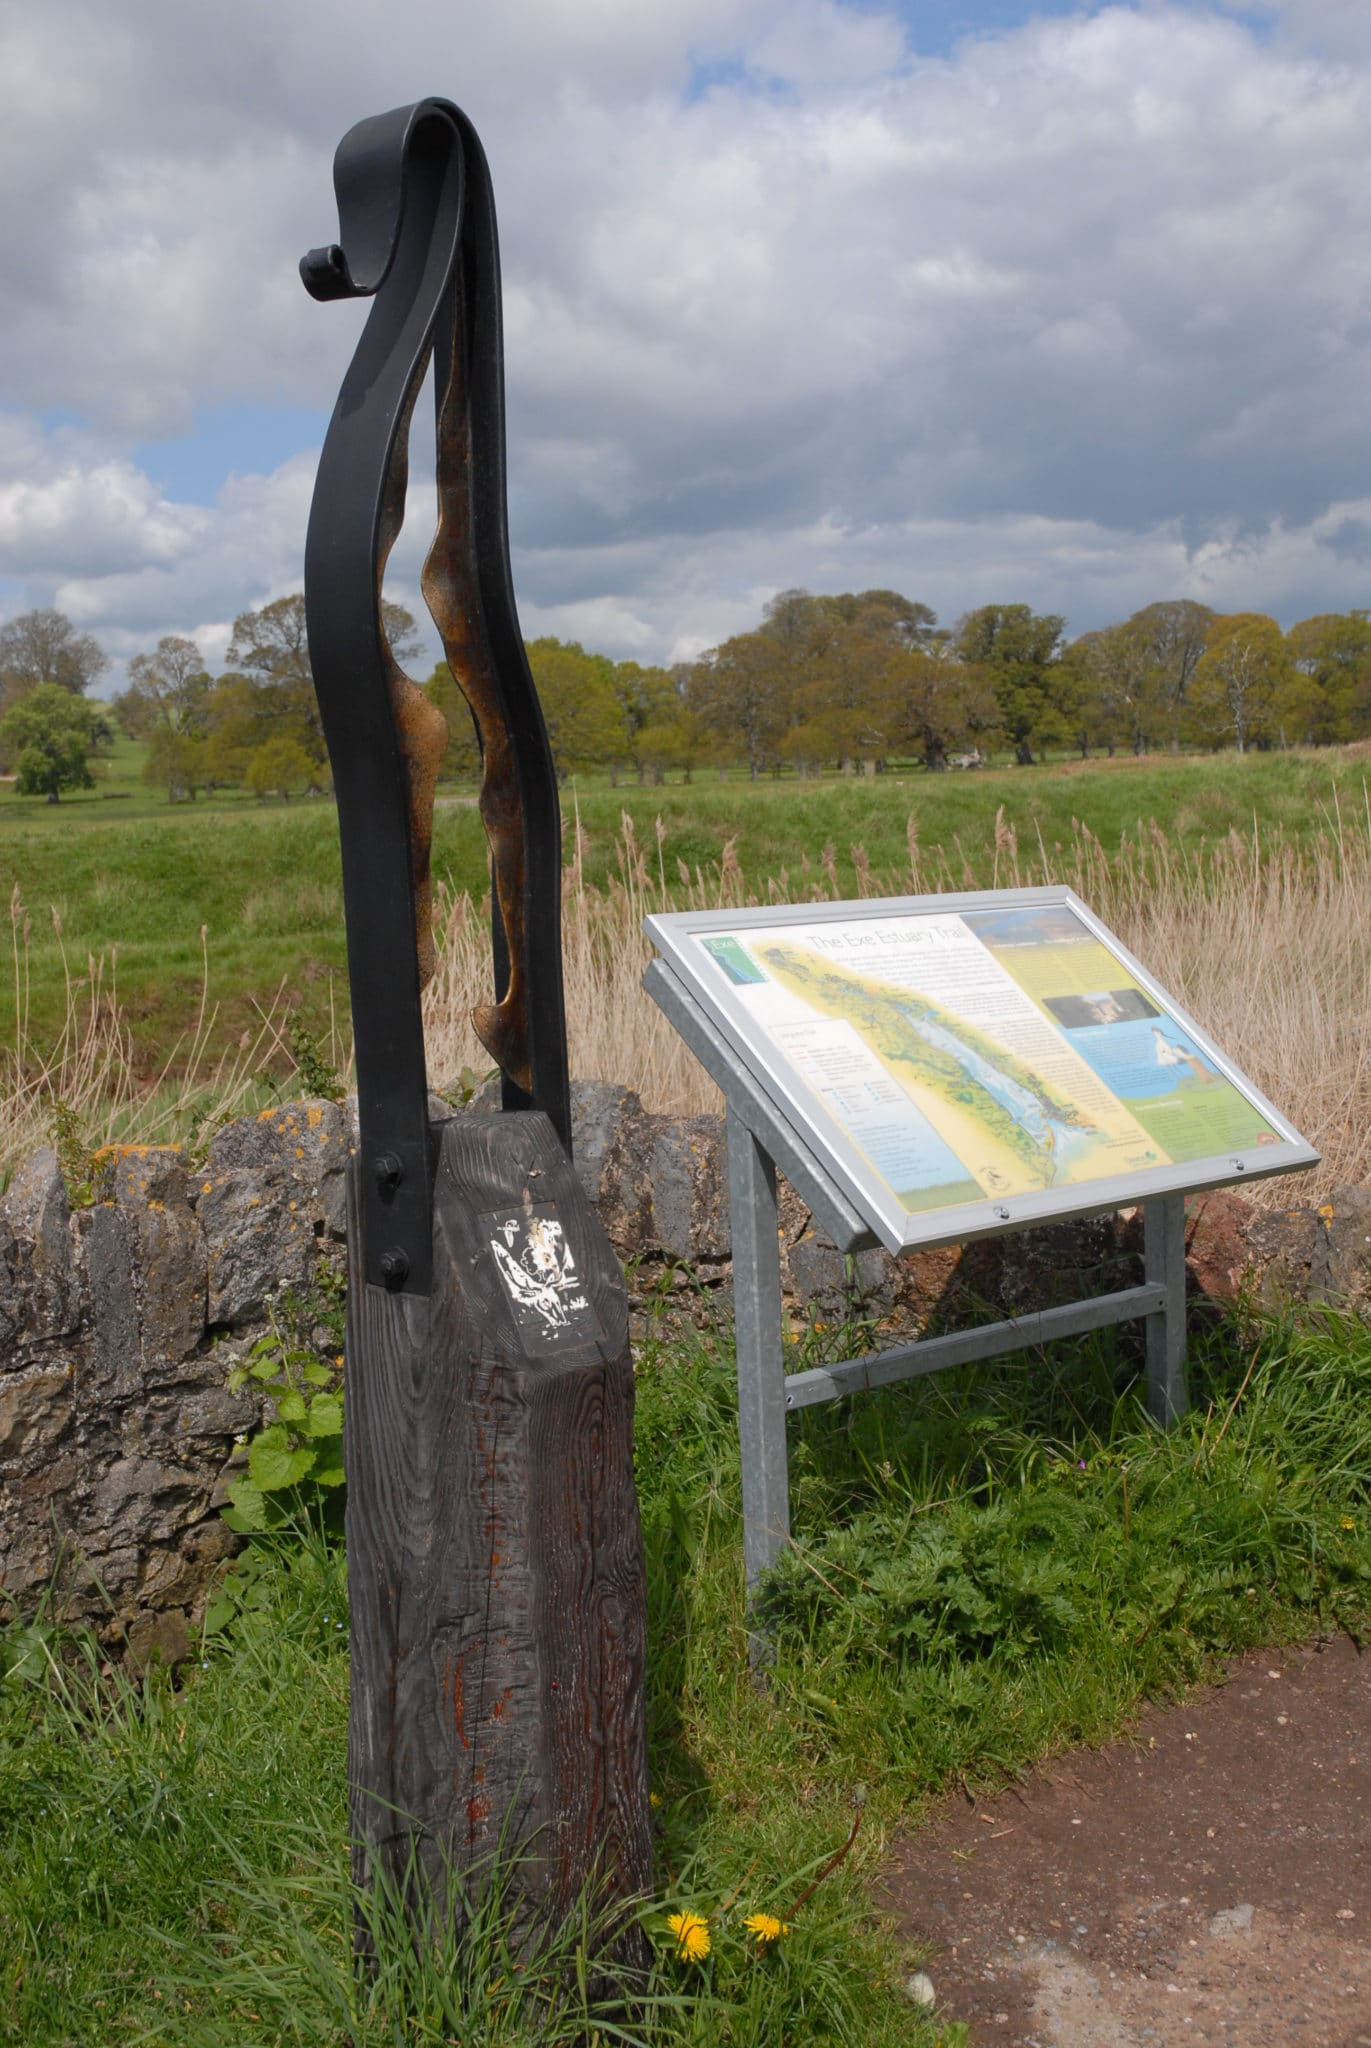 Image 6b: Interpretation board and Exe Trail marker on the Exe Estuary